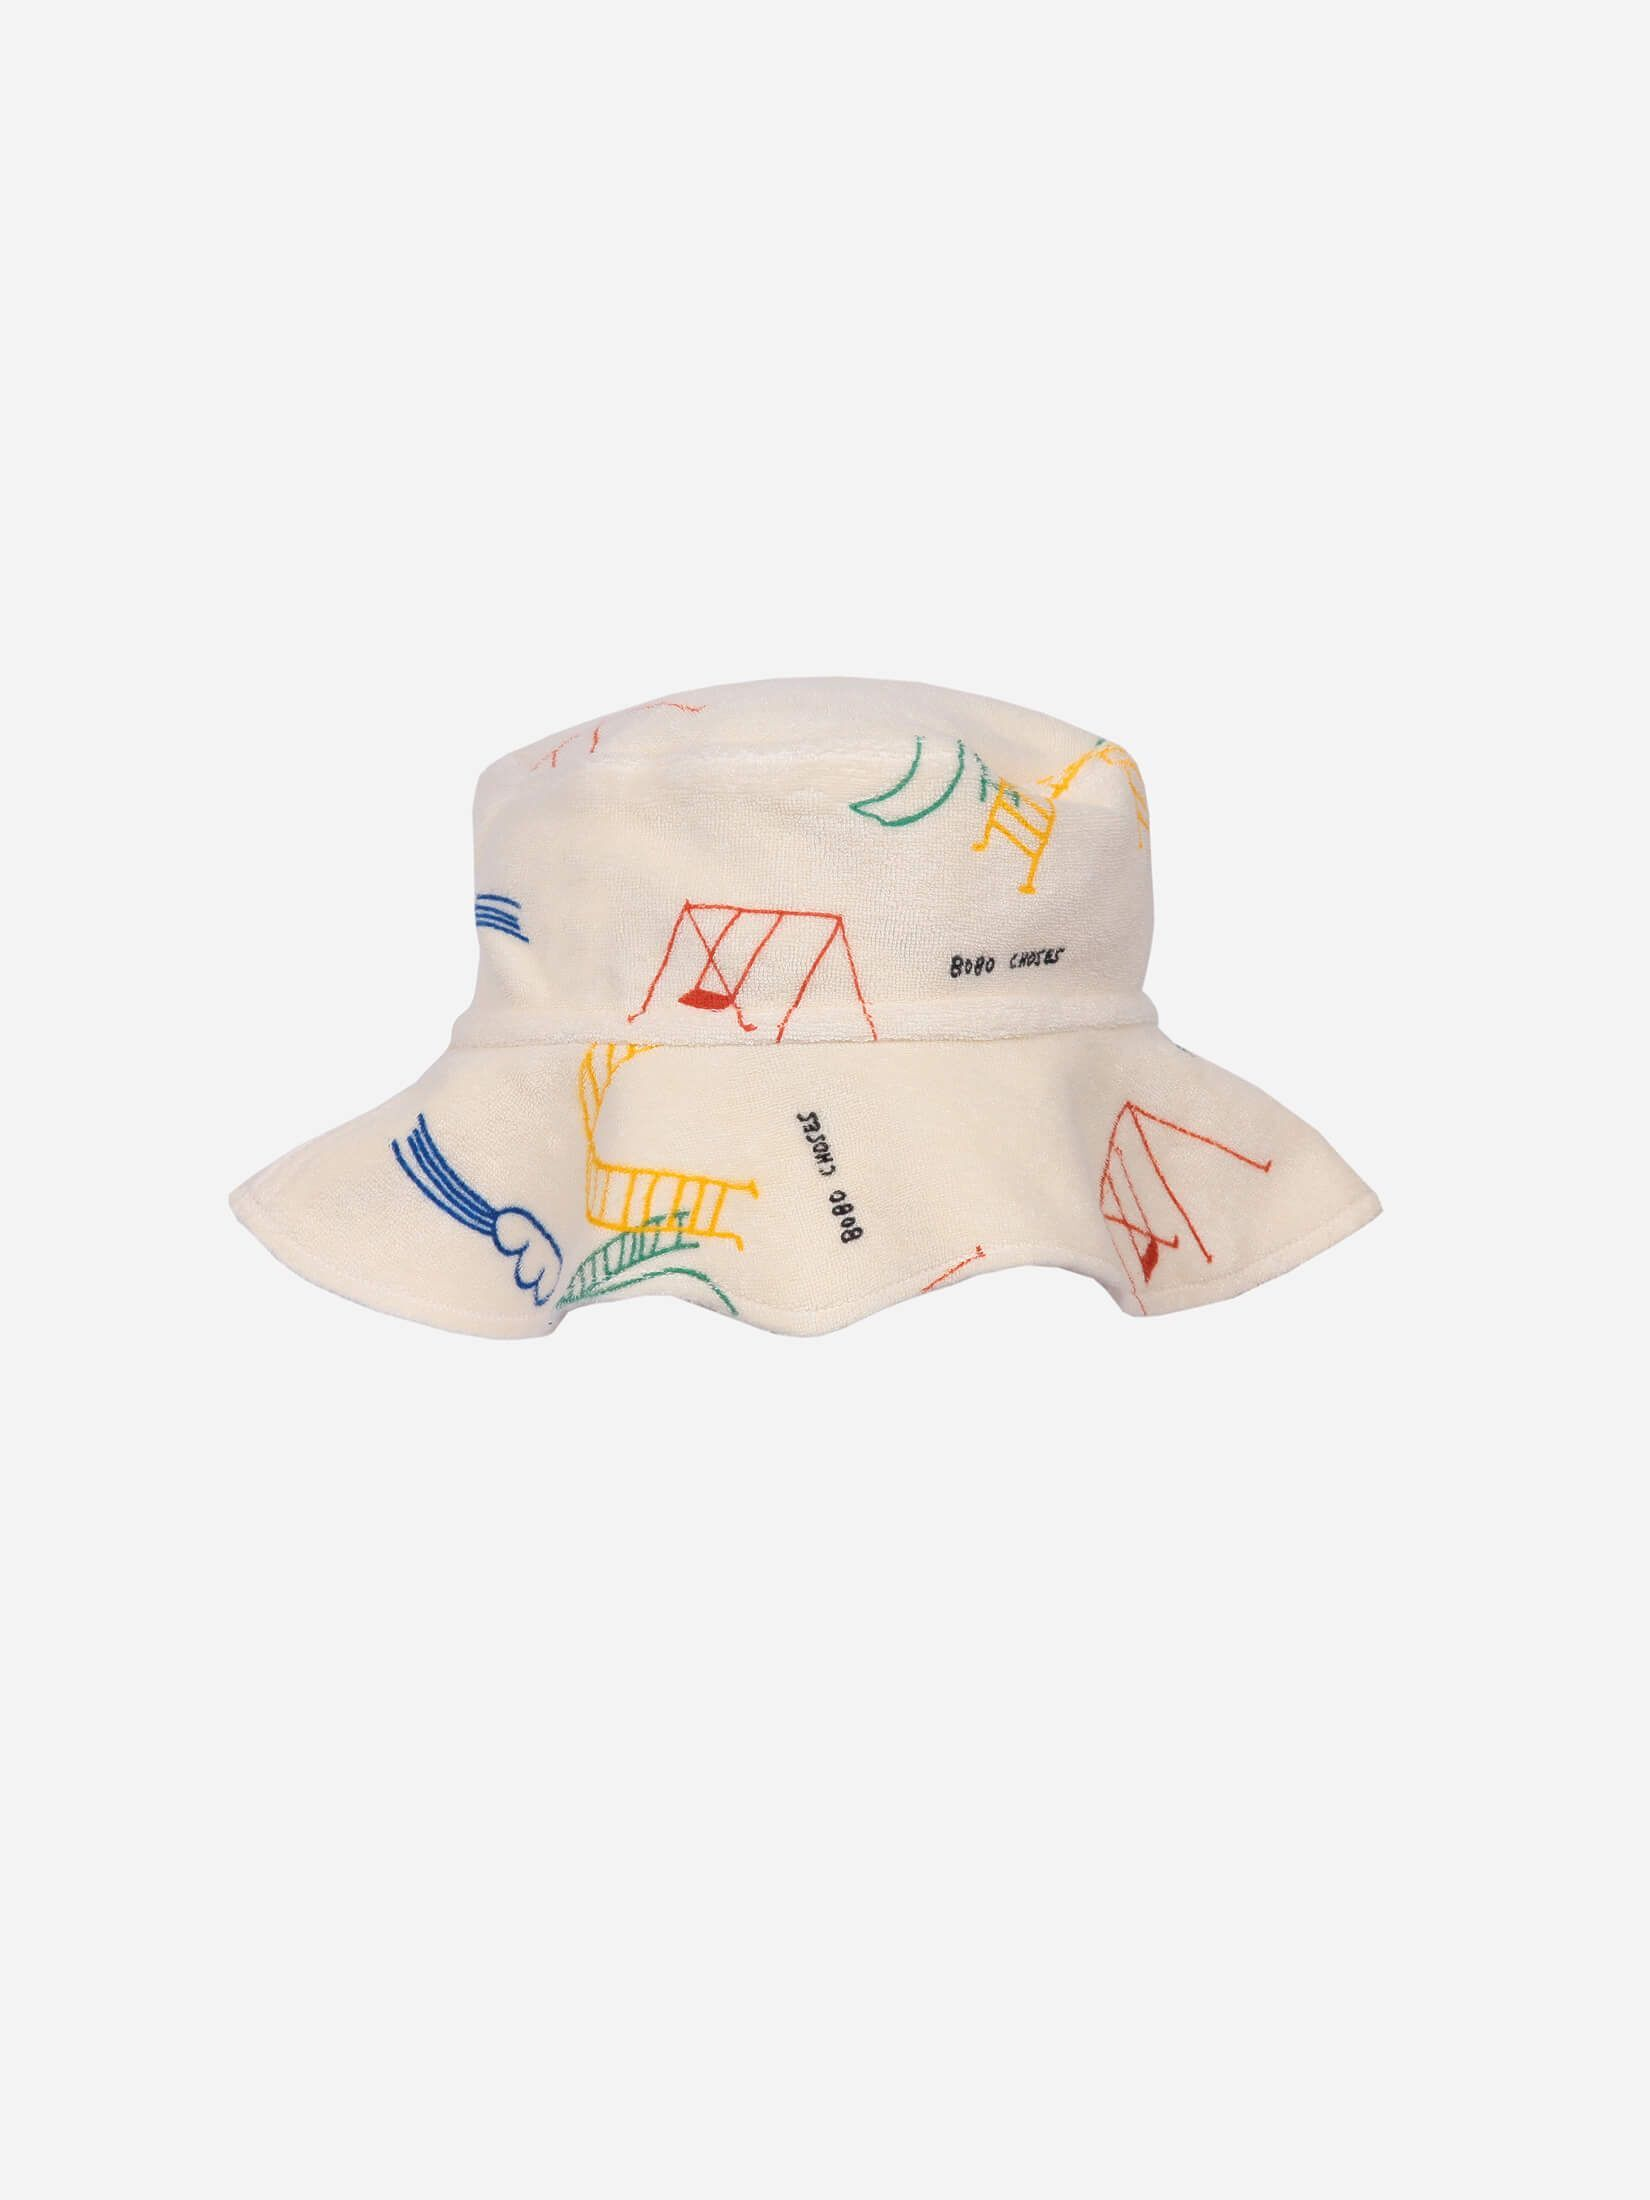 BOBO CHOSES ボボショセス Playground All Over Hat size:6-12m(70-80)